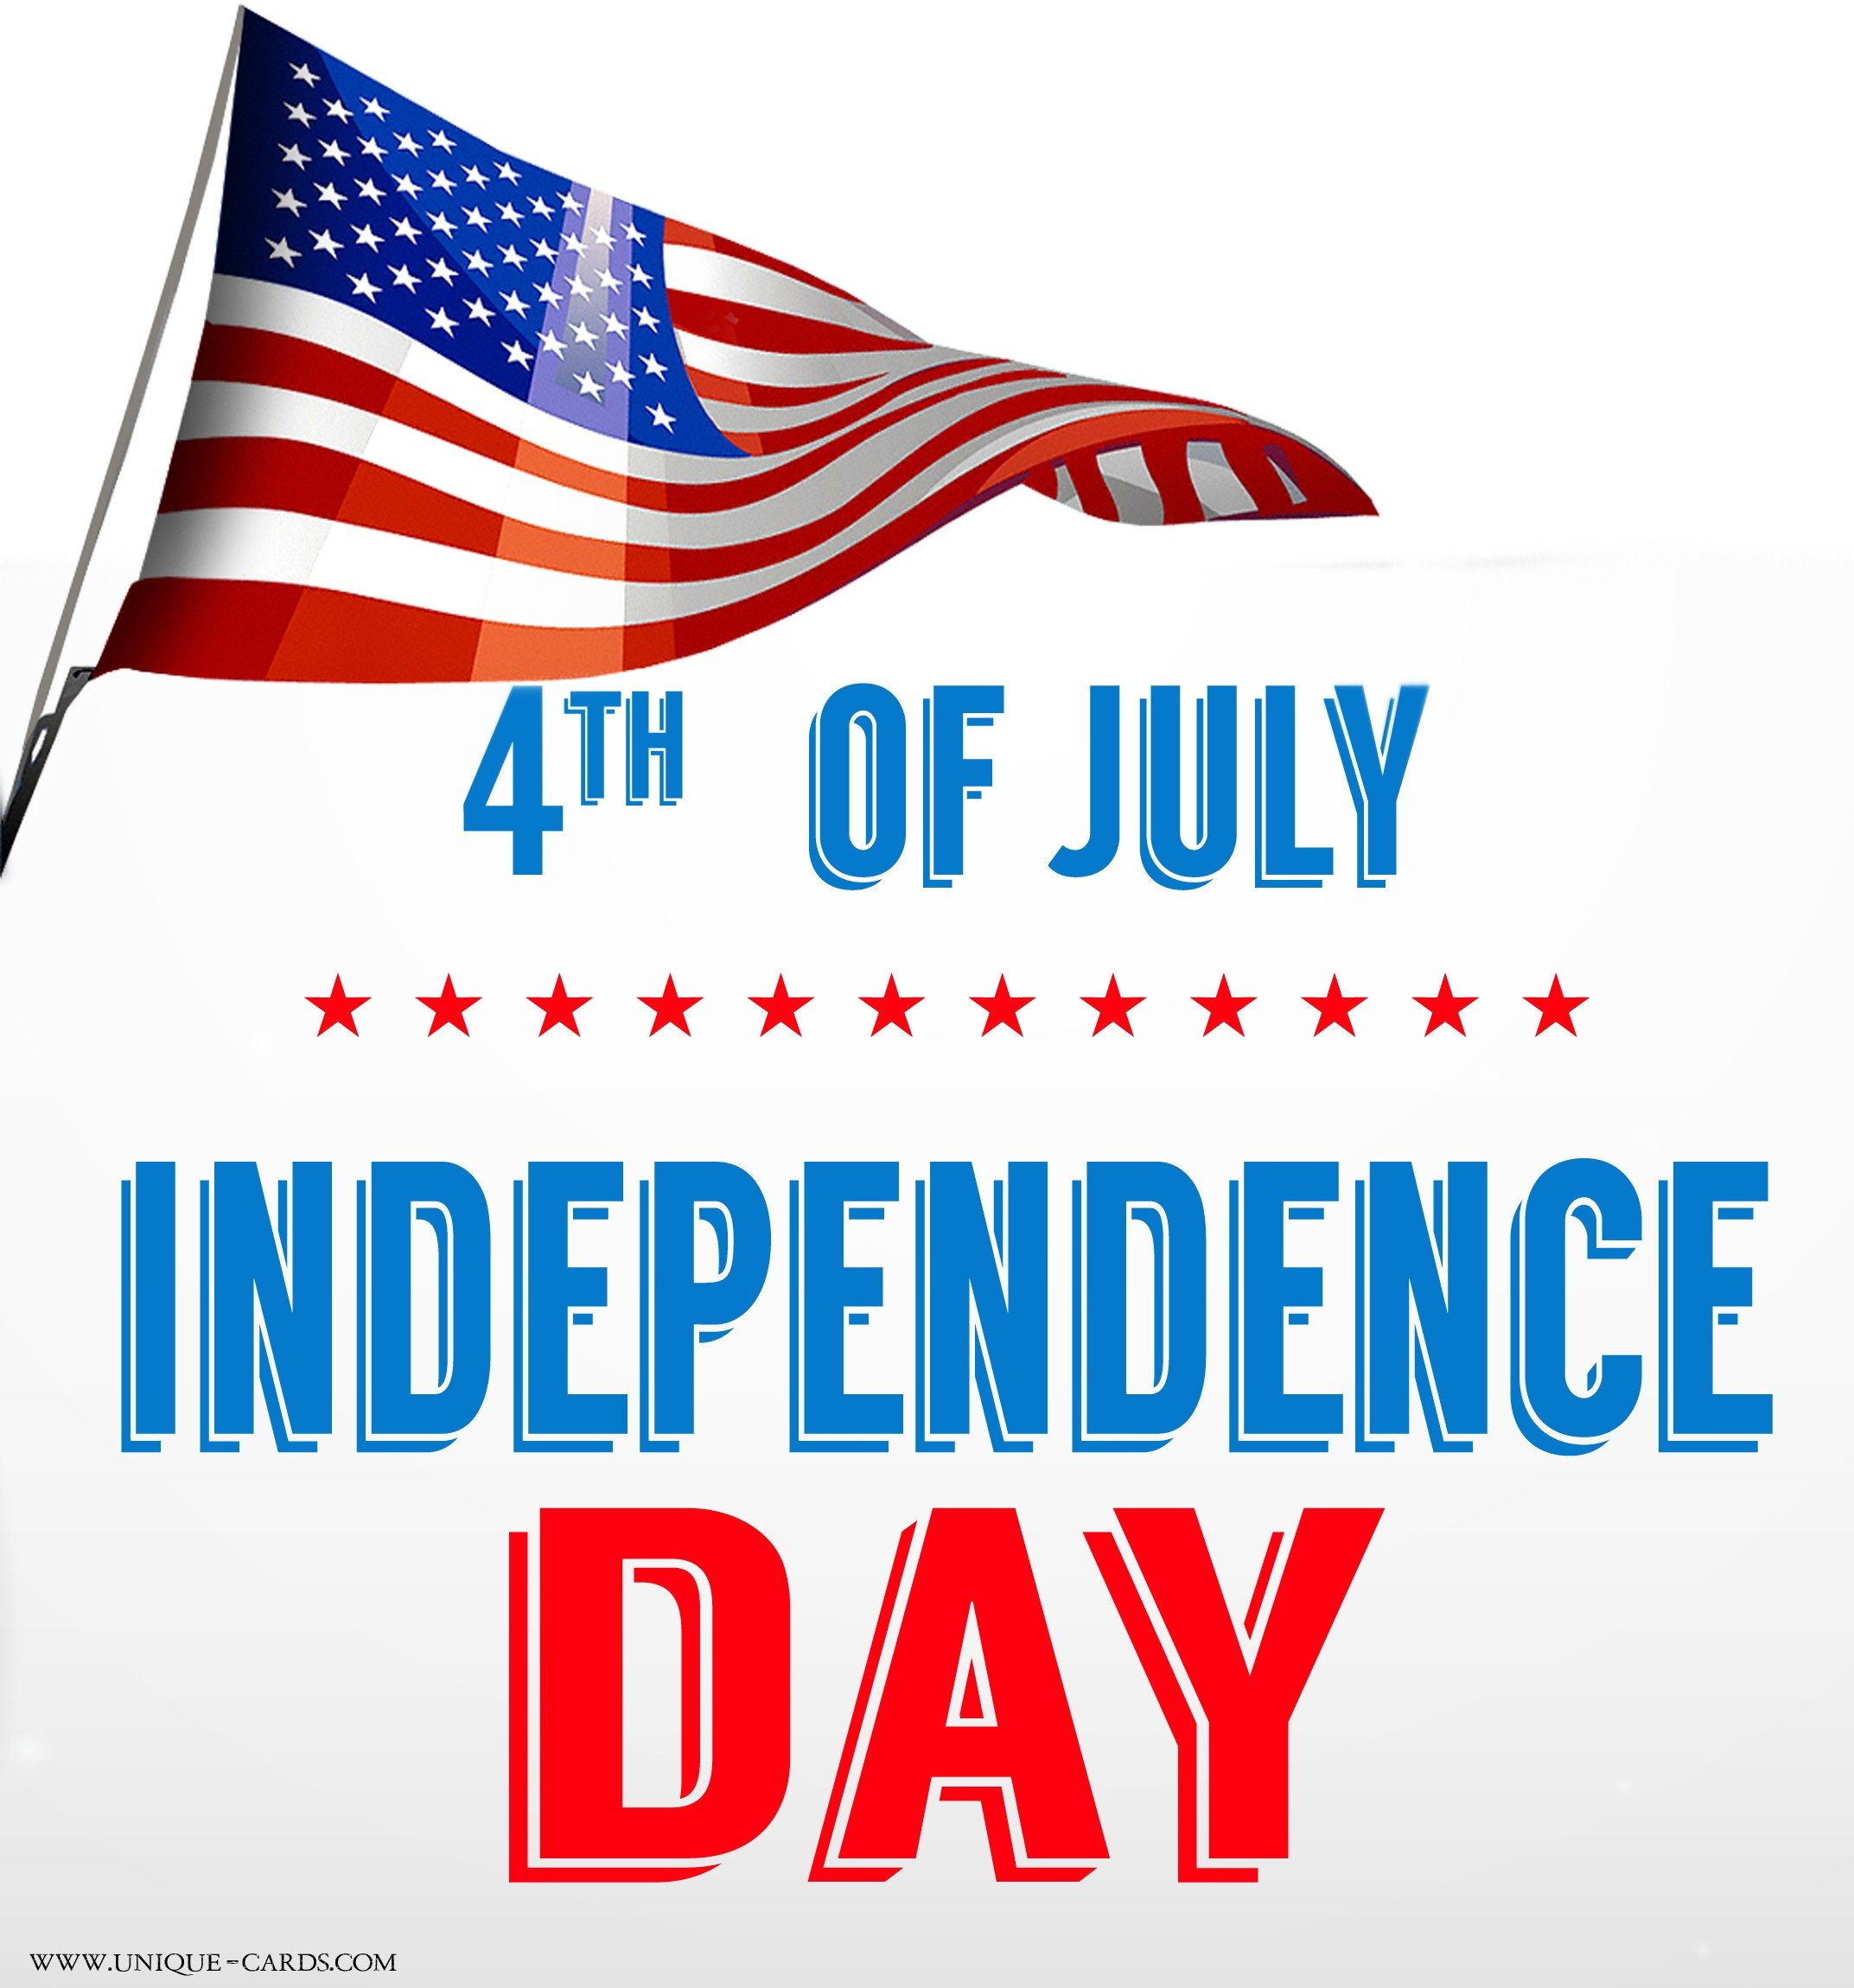 4TH JULY Independence Day usa america holiday 1ijuly united states